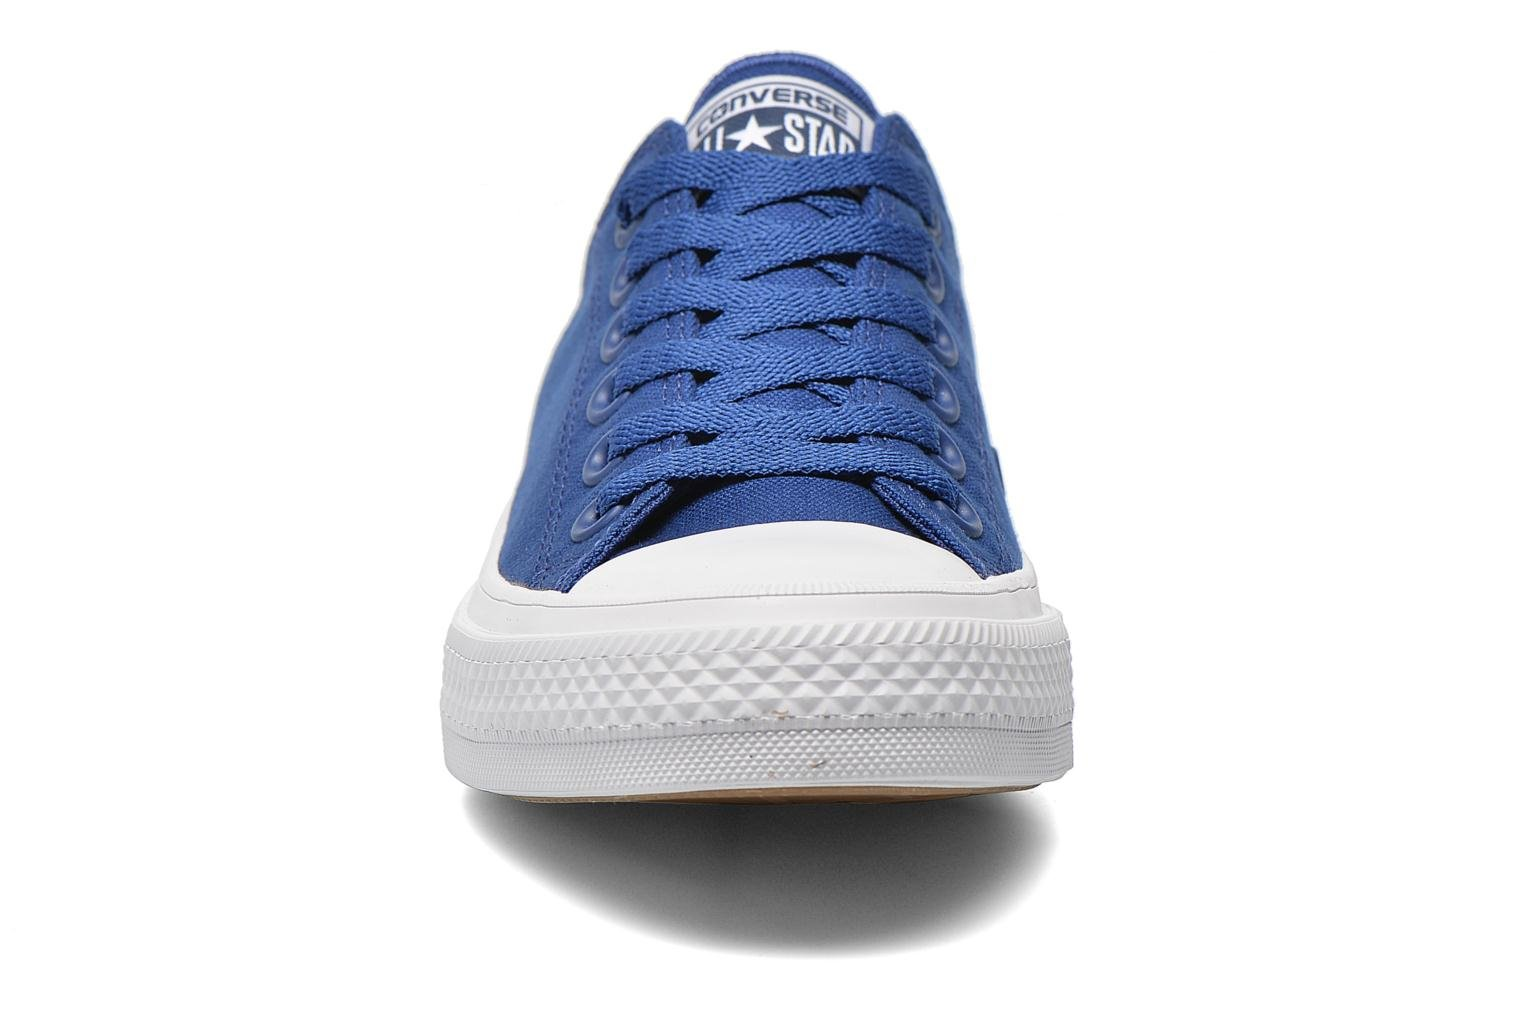 Roadtrip Blue/White/Blue Converse Chuck Taylor All Star II Ox W (Bleu)